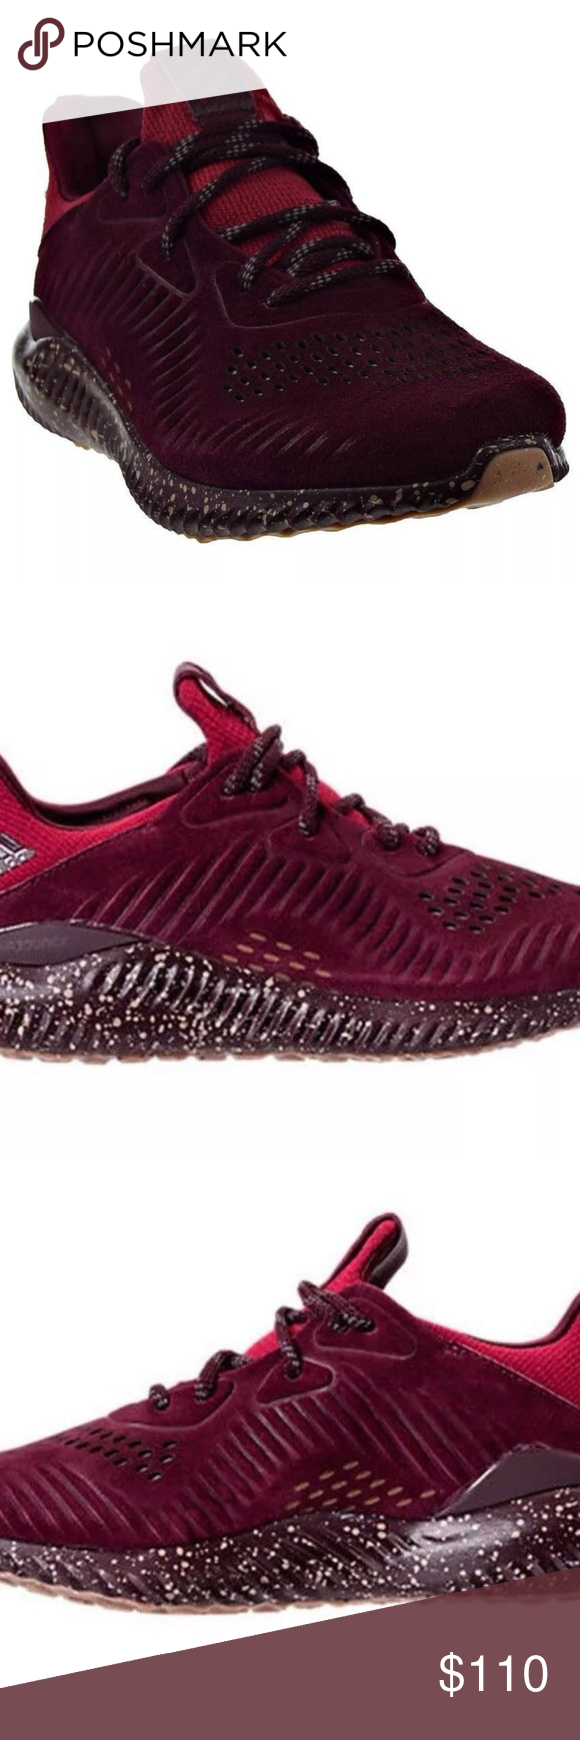 0aa1e5d9df633 New Adidas AlphaBounce Lea Leather Boost Shoes New Adidas AlphaBounce Lea  Men s Leather Boost Shoes Maroon CQ1189 Size  9 Brand New In Box Men s  ADIDAS® ...